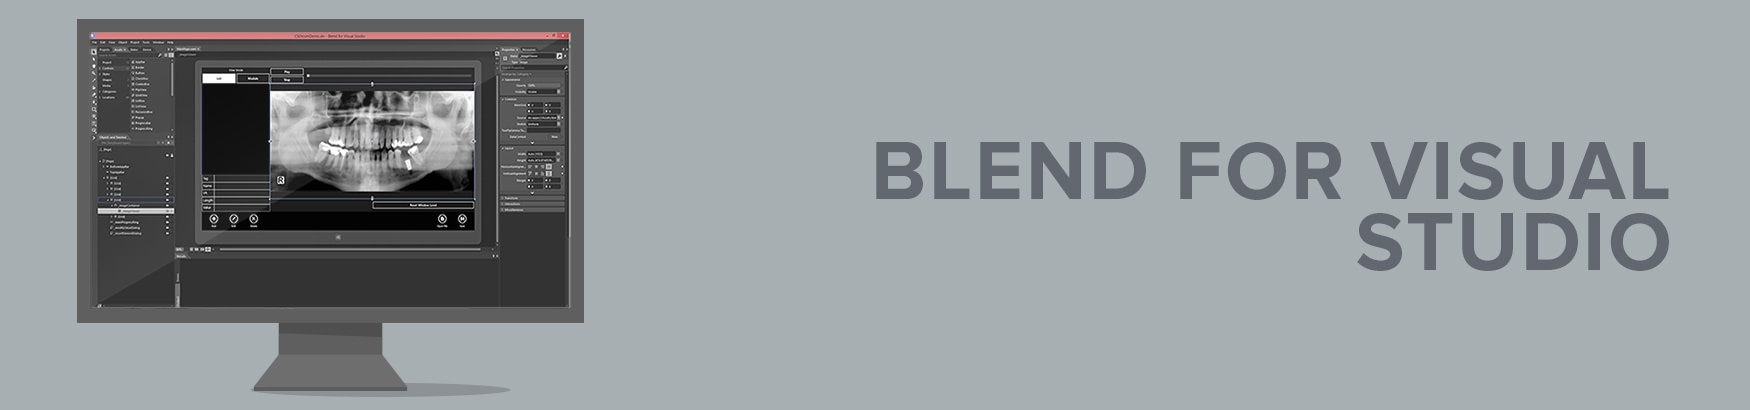 Blend for Visual Studio Image Viewer SDK